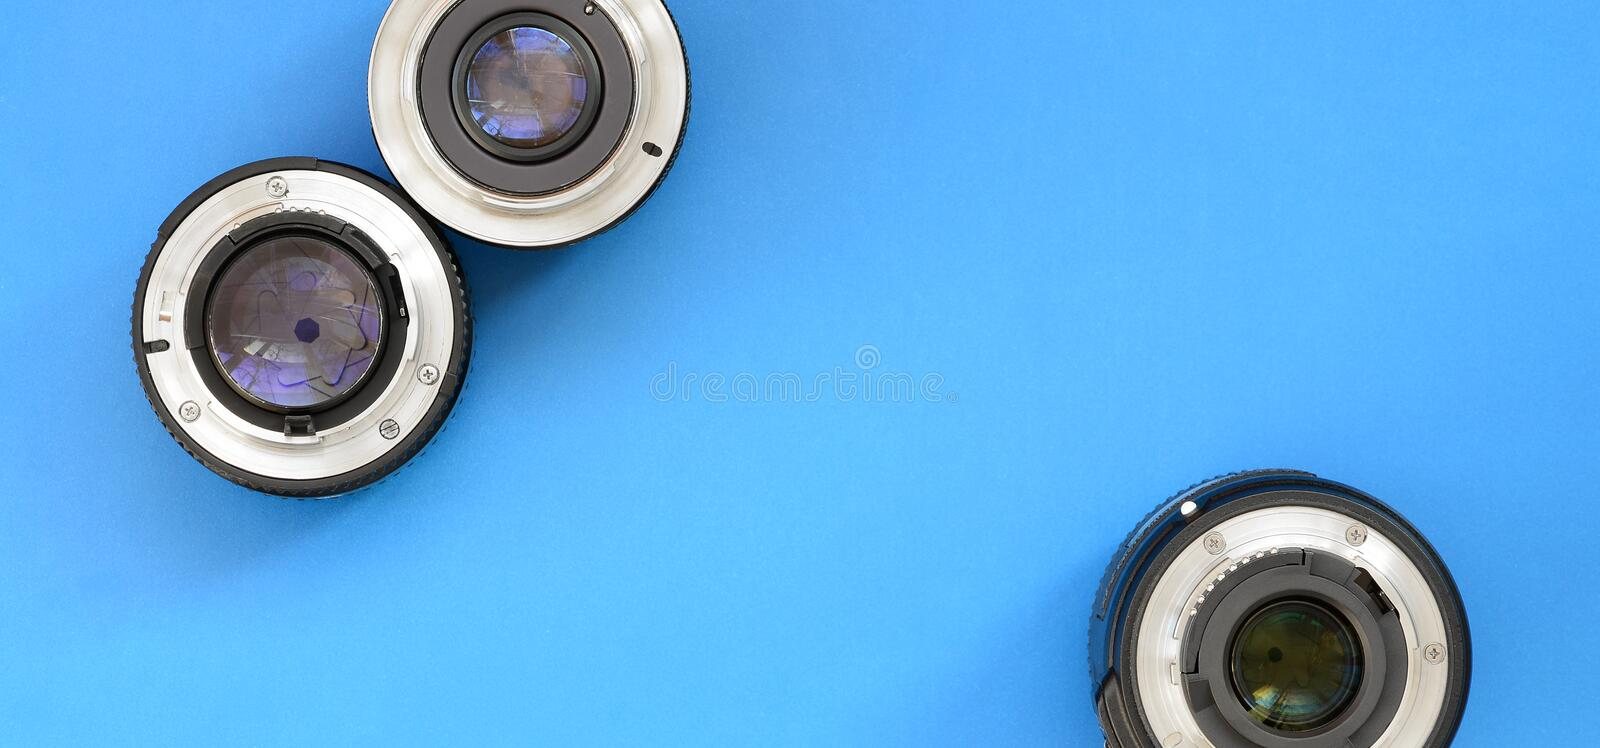 Several photographic lenses lie on a bright blue background. Spa stock photo